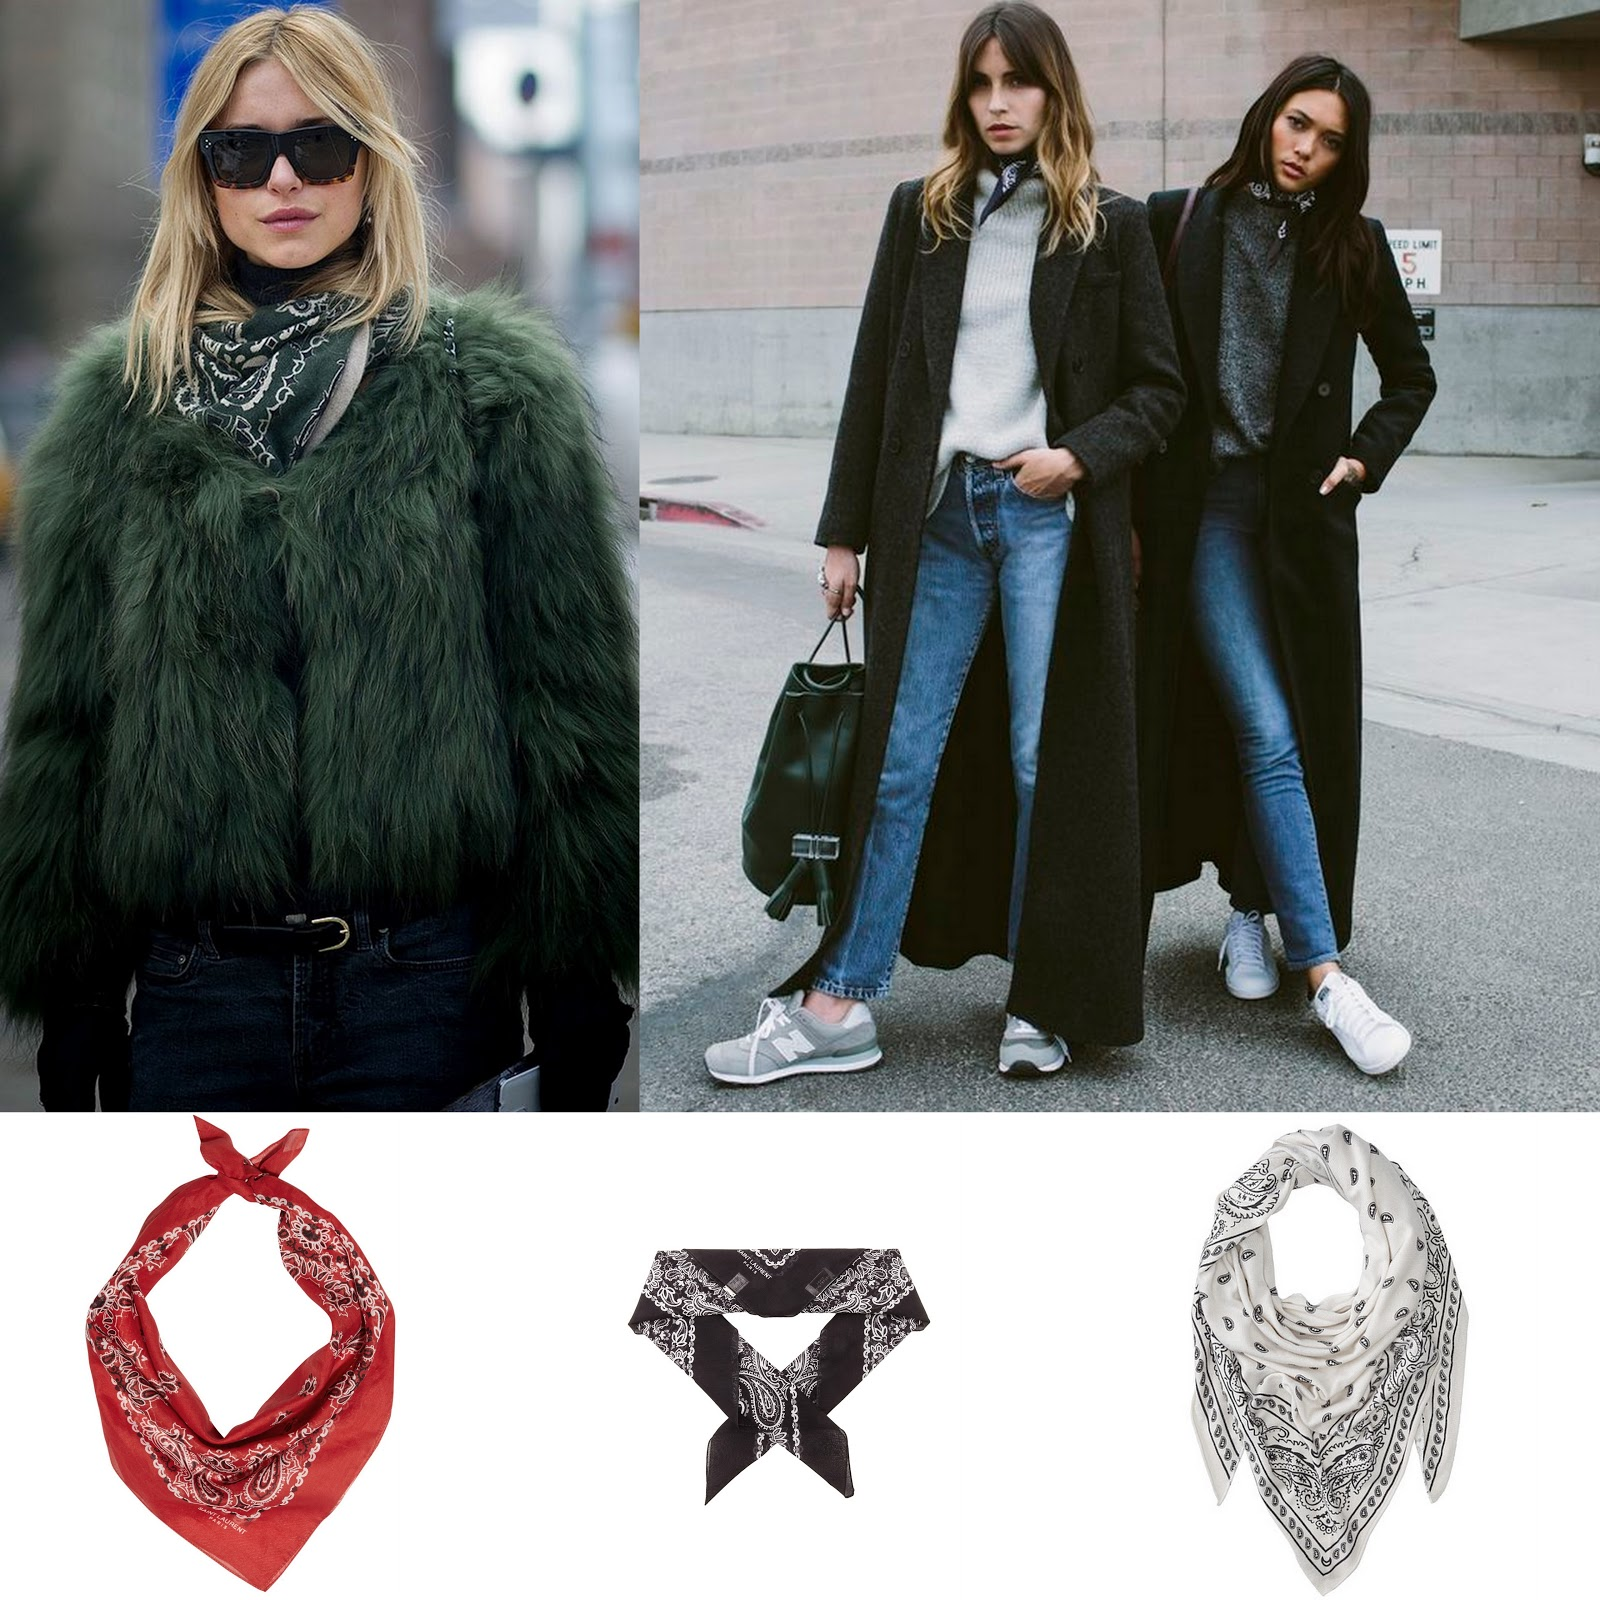 deau, blogger, blog, dominique, candido, fashion, items, trend, bandana, scarf, scarves, trends, trending, website, websites, mode